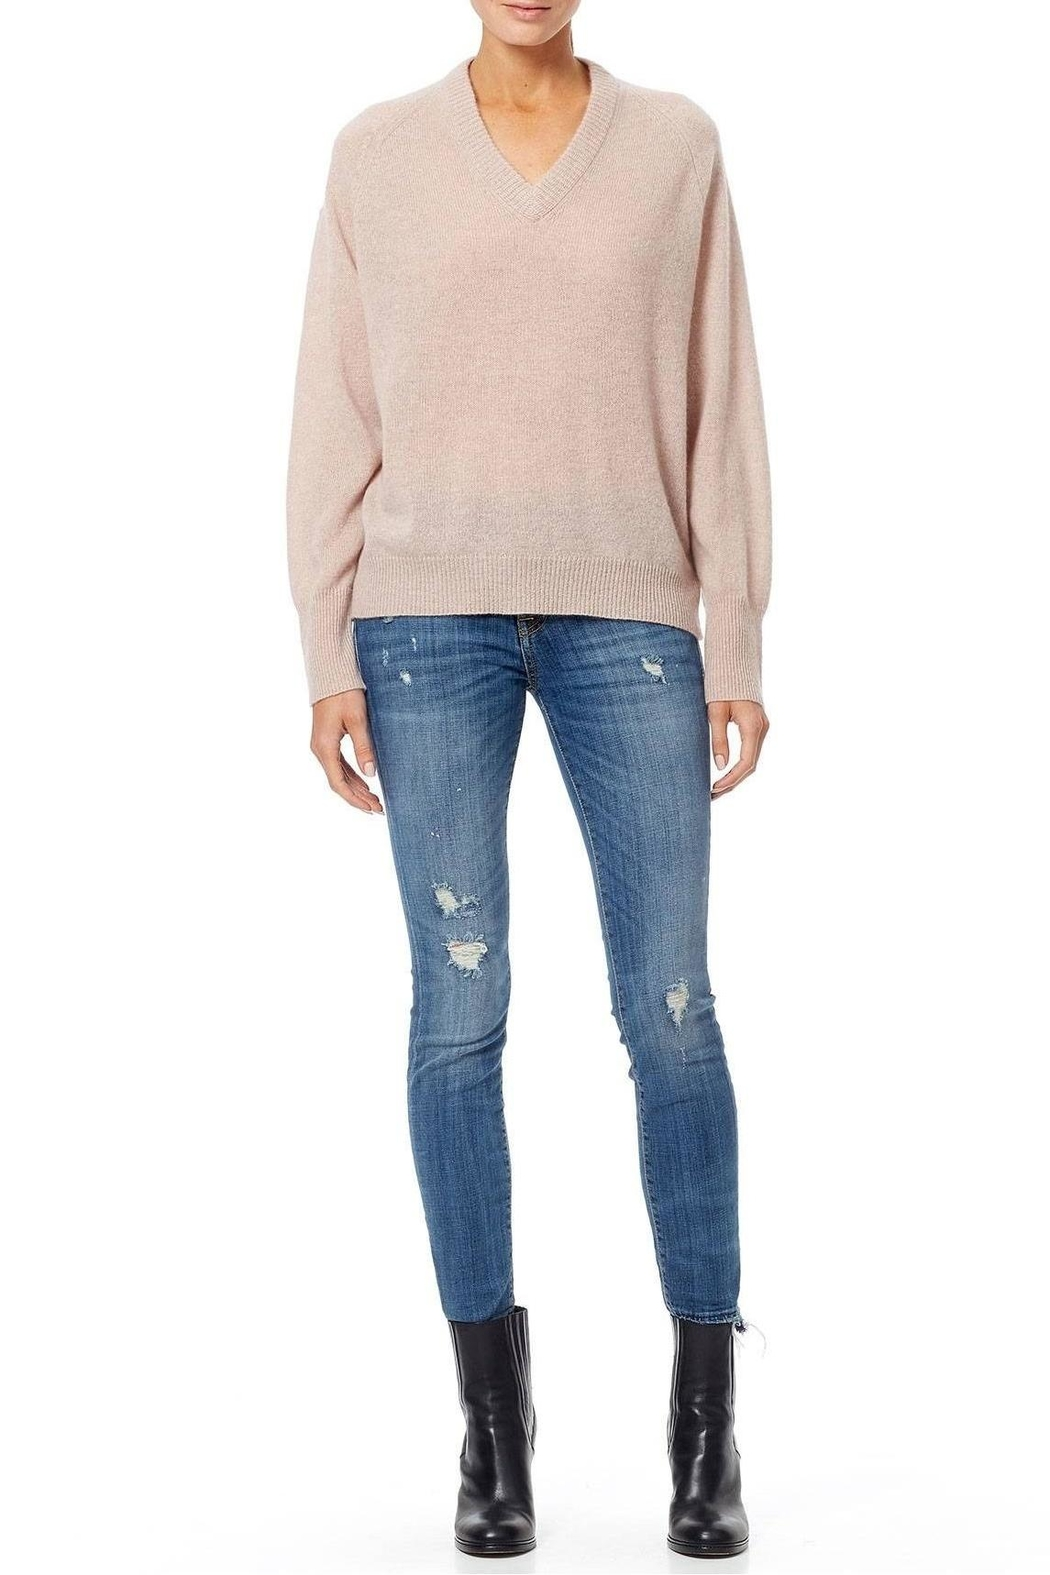 360 Cashmere Danielle Sweater - Back Cropped Image